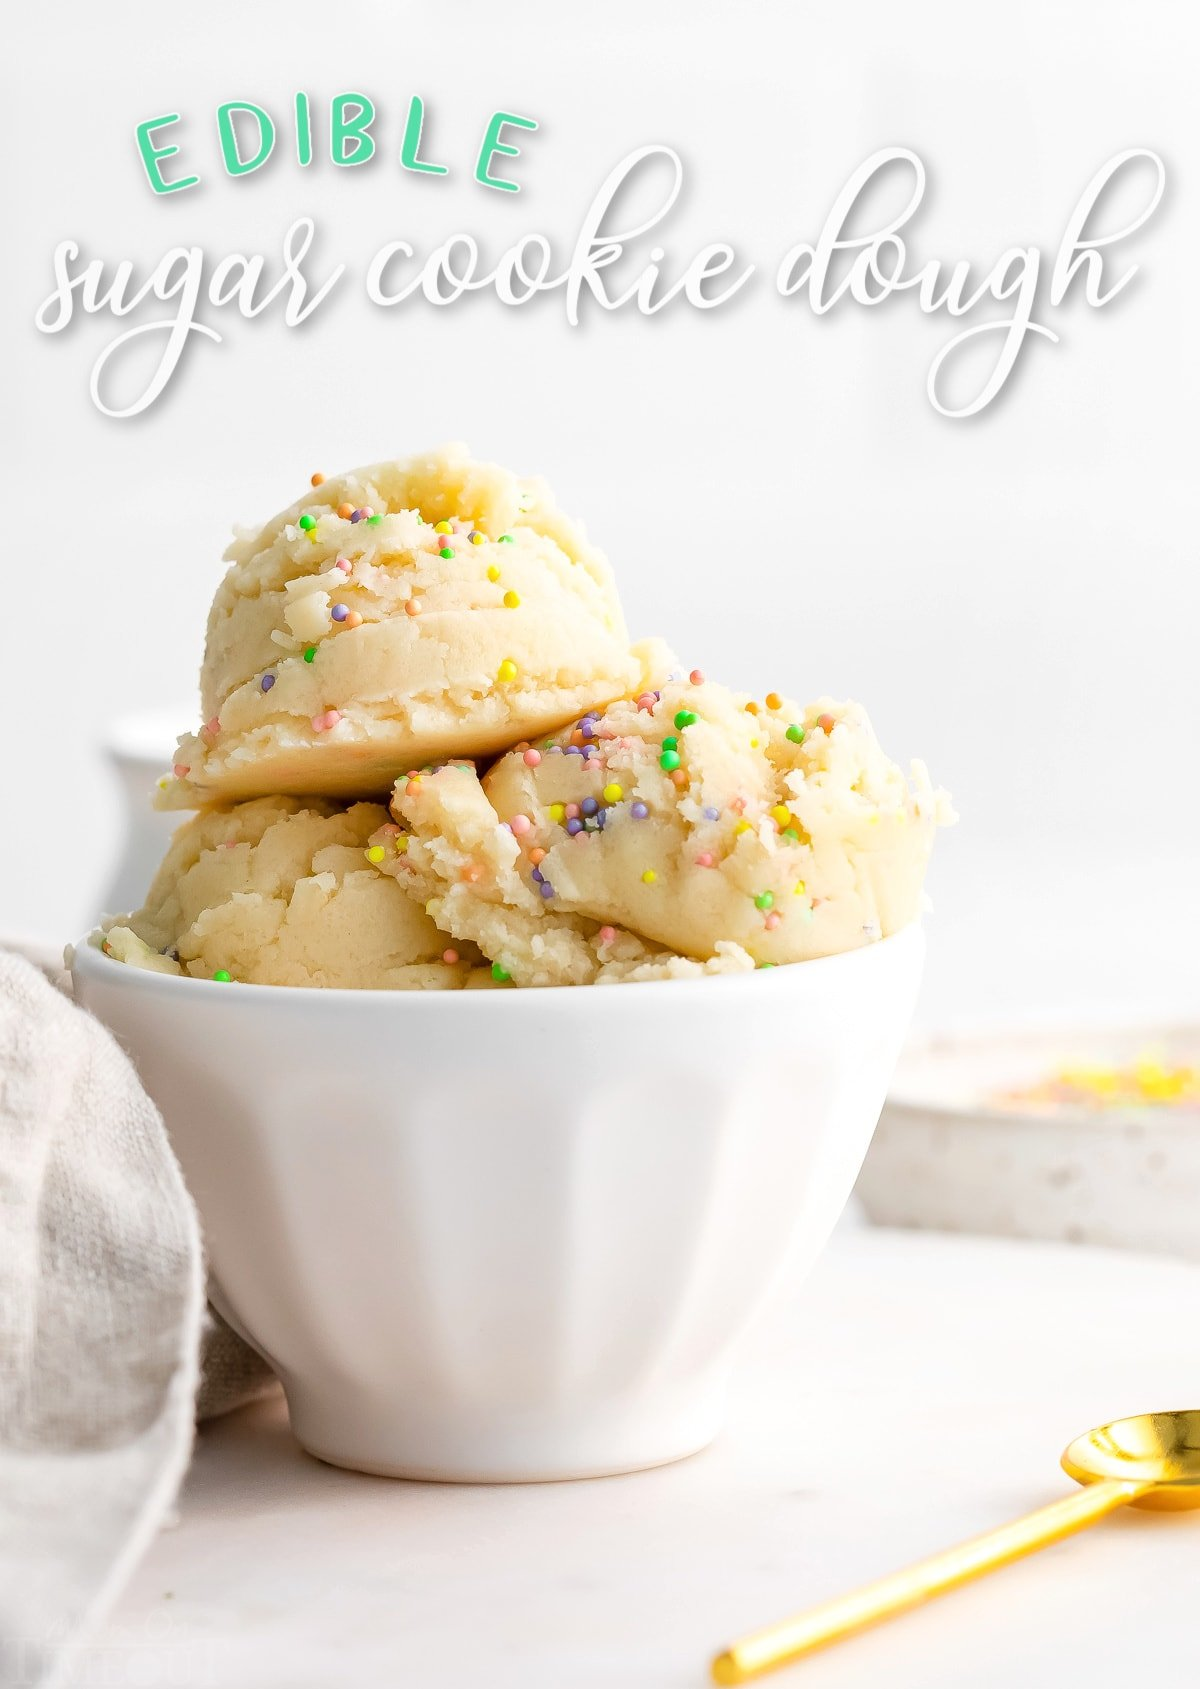 edible sugar cookie dough in small white bowl with sprinkles on top. title overlay at top of image.